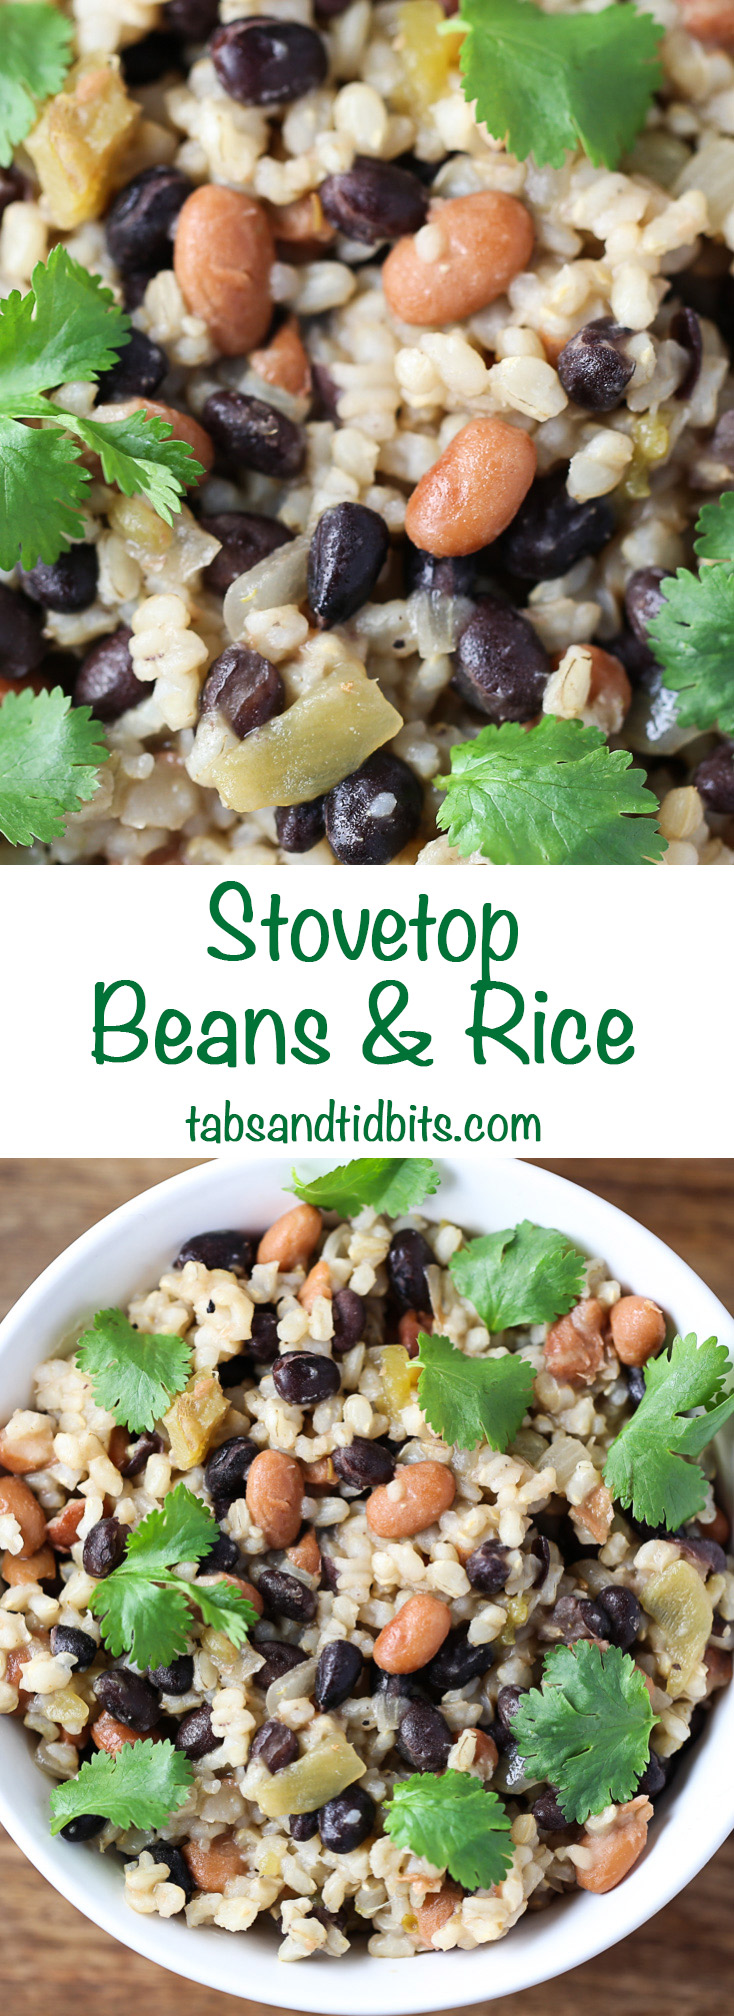 Stovetop Beans & Rice